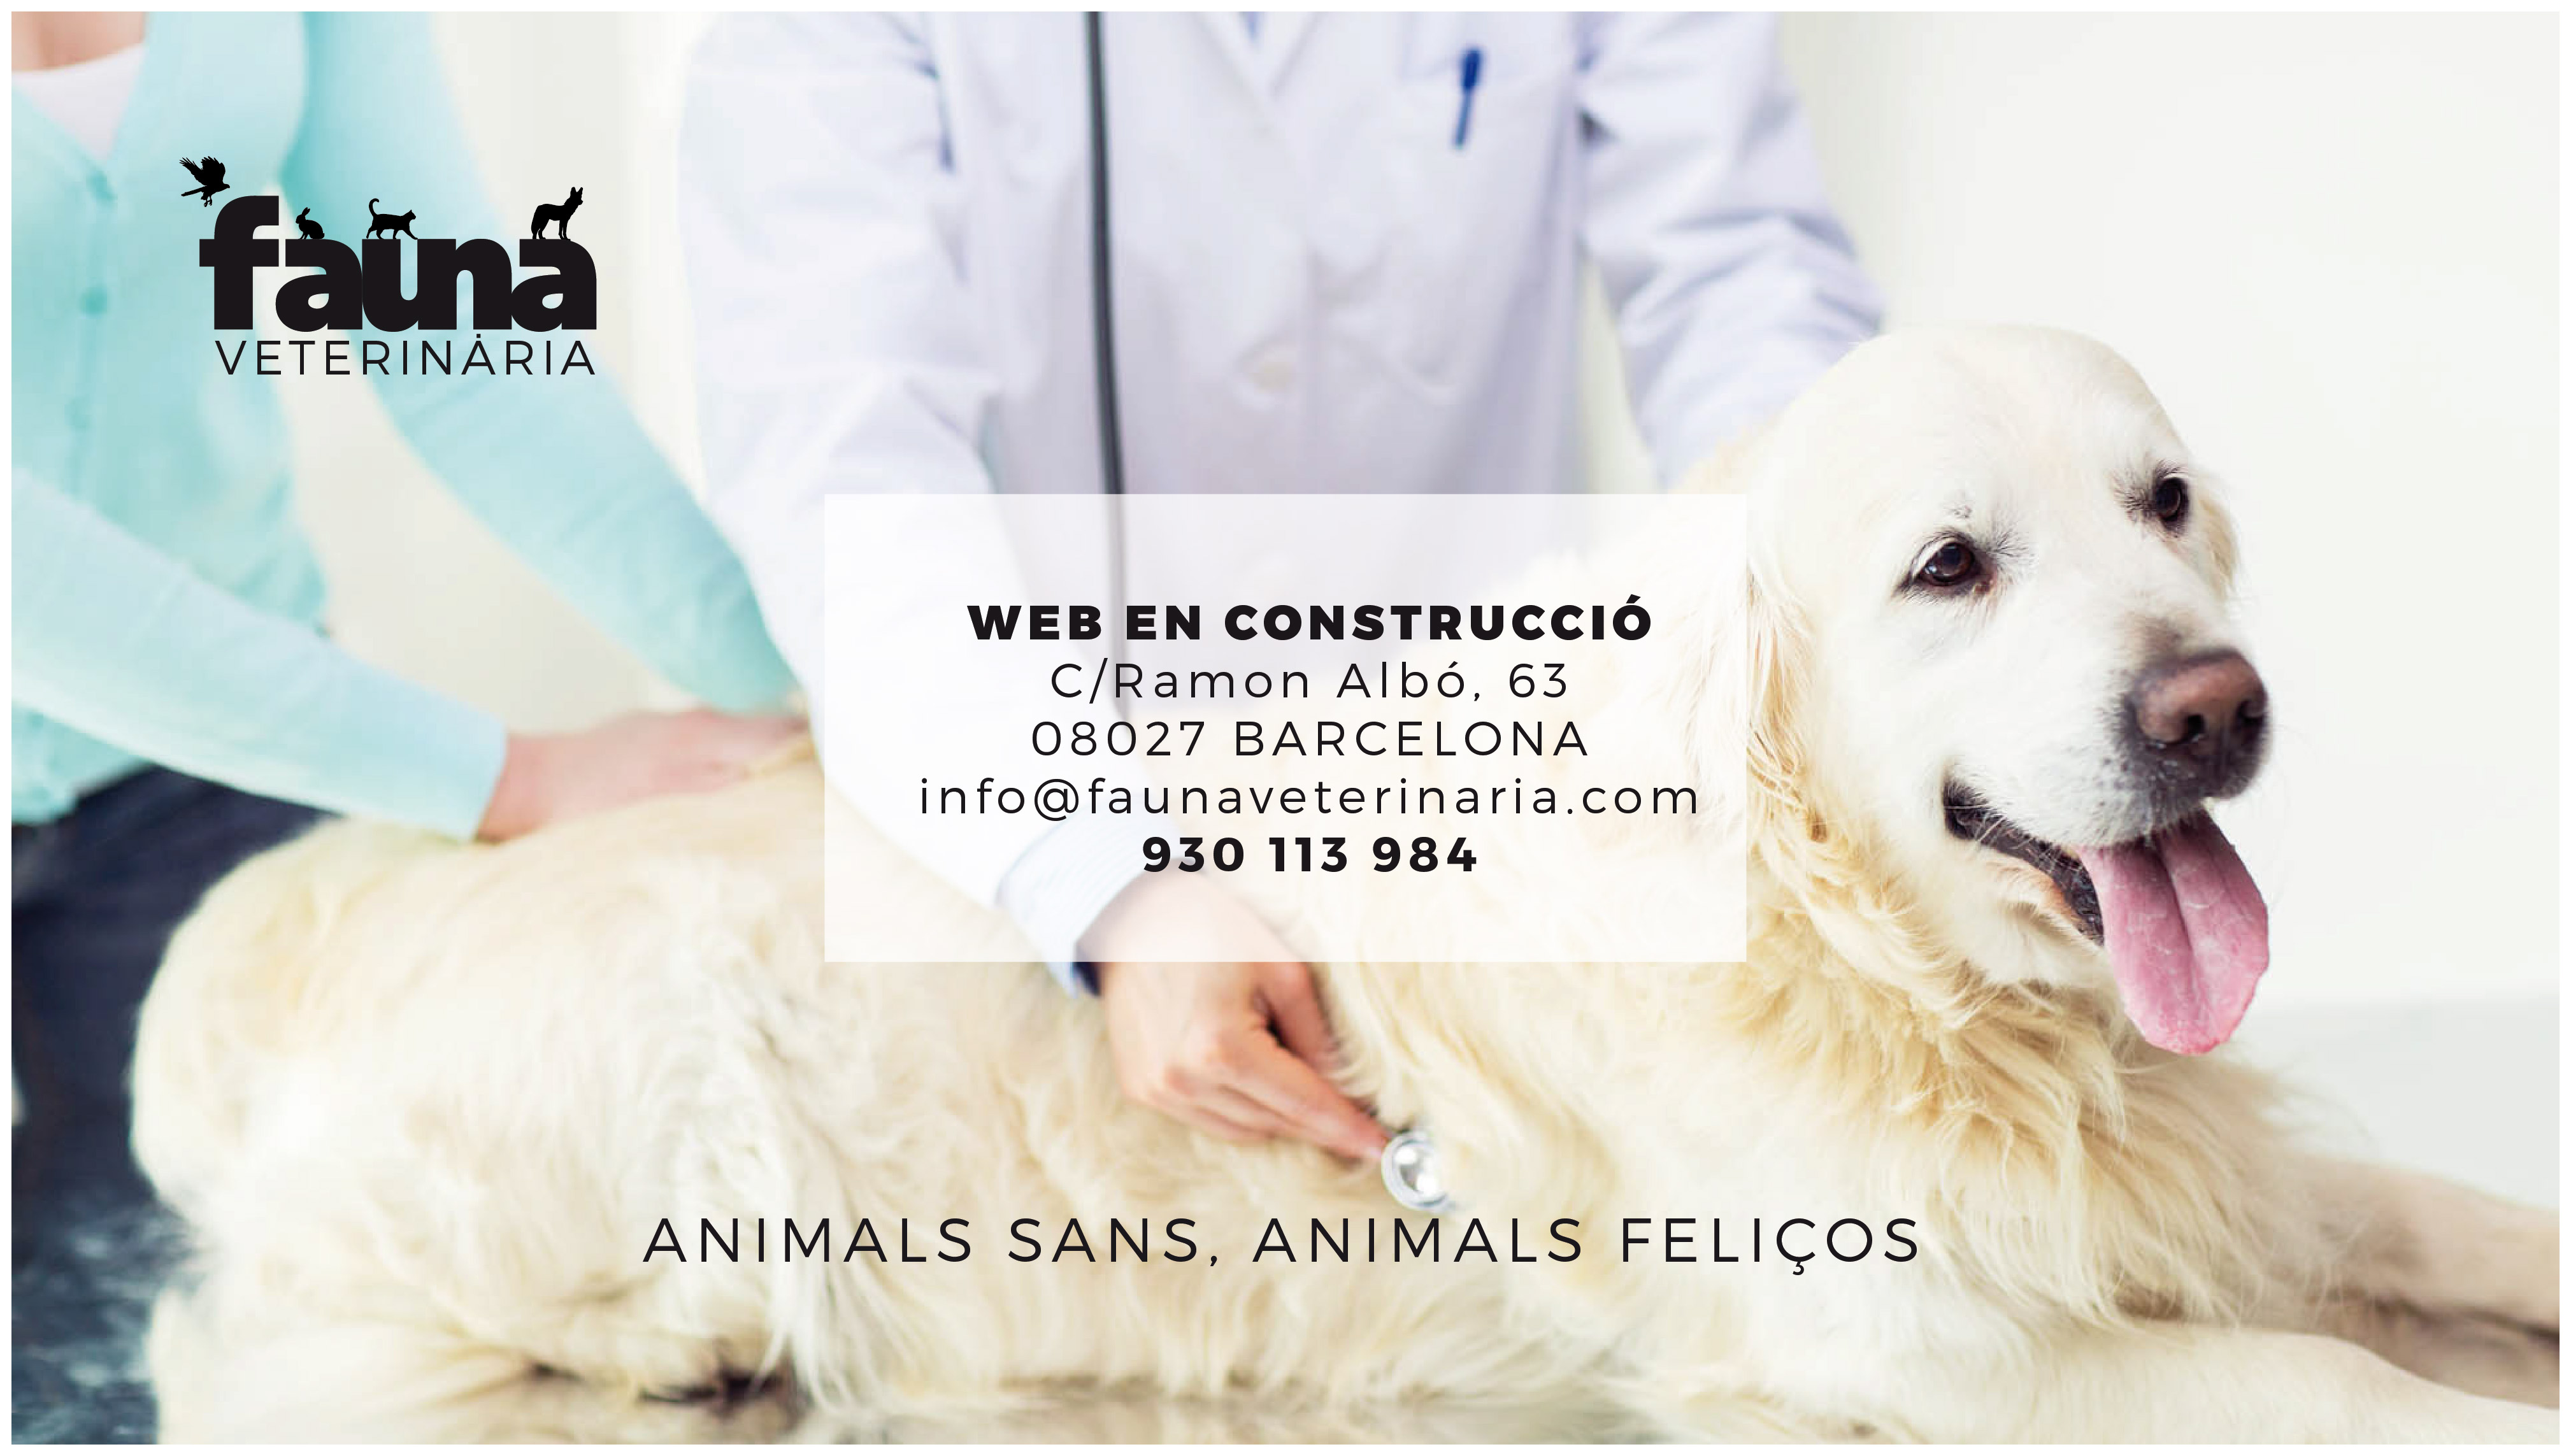 Fauna Veterinaria